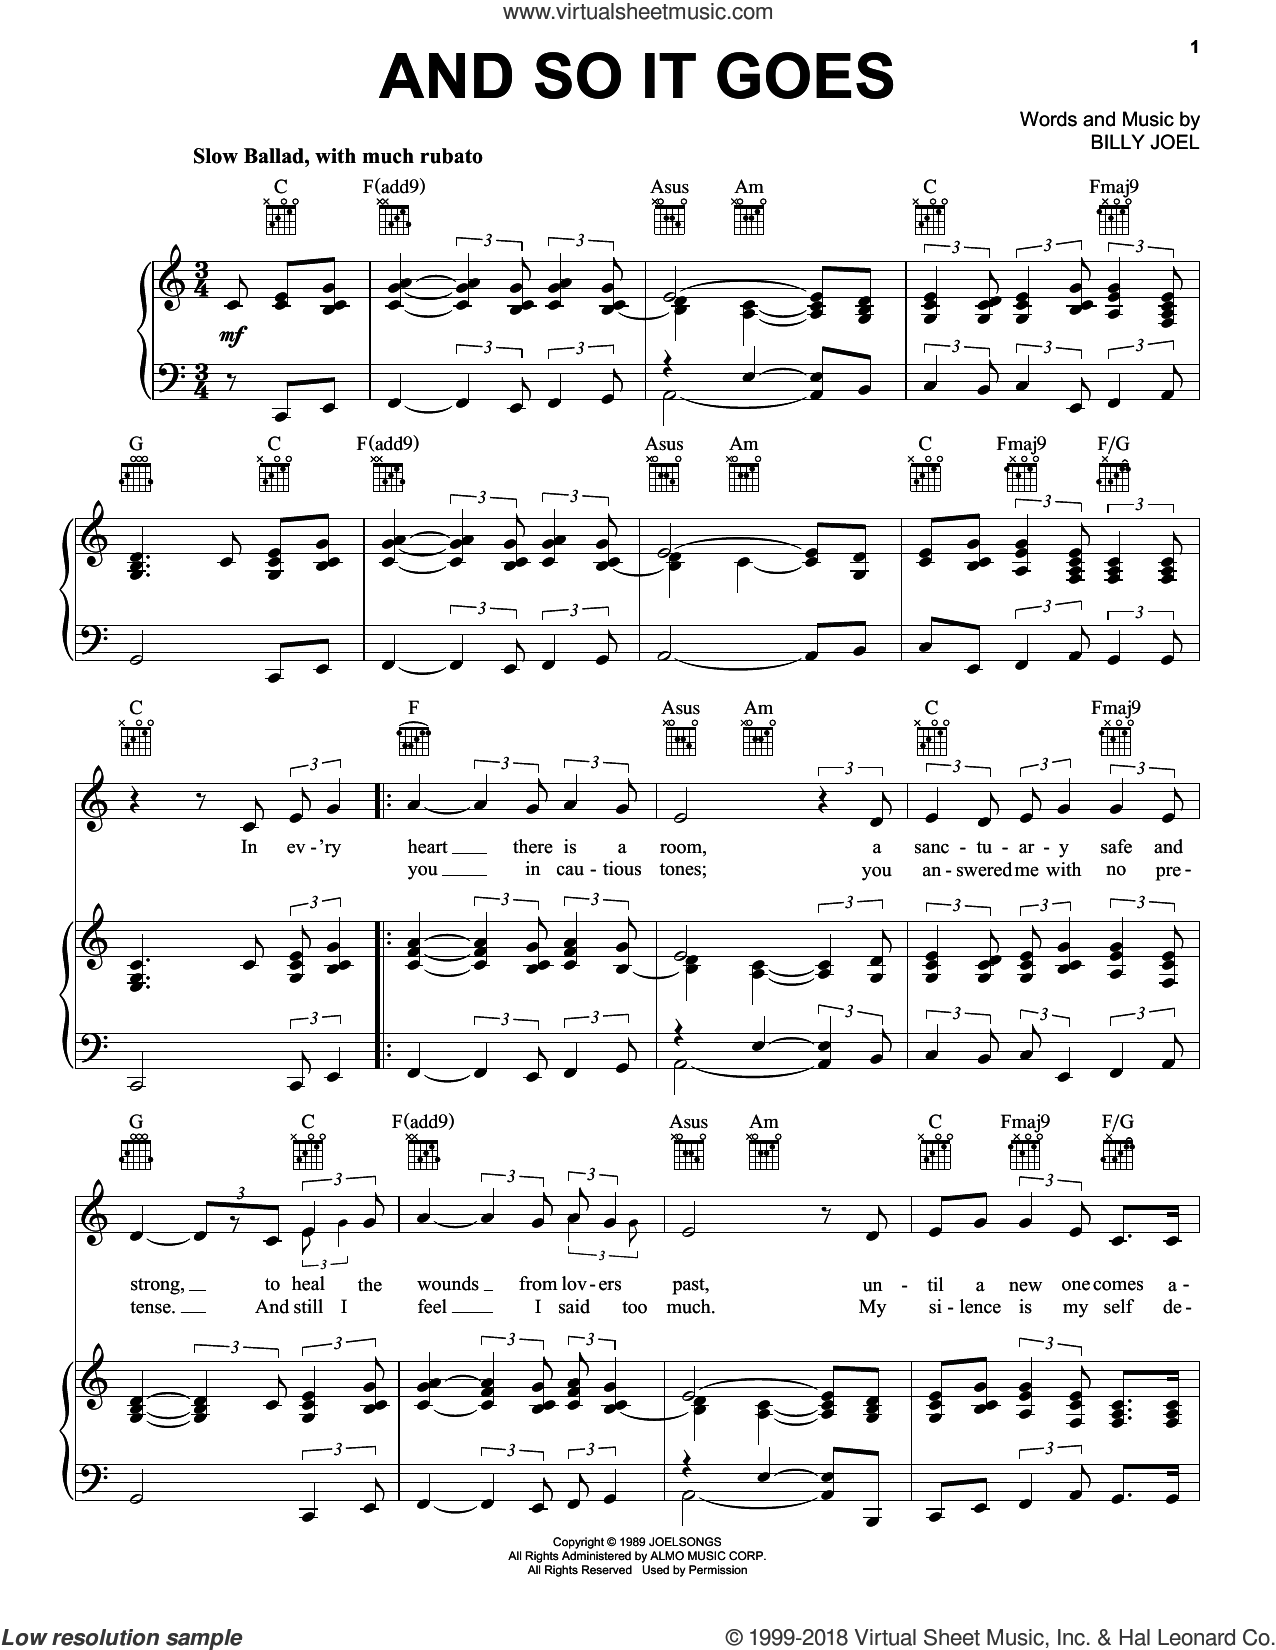 And So It Goes sheet music for voice, piano or guitar by Billy Joel